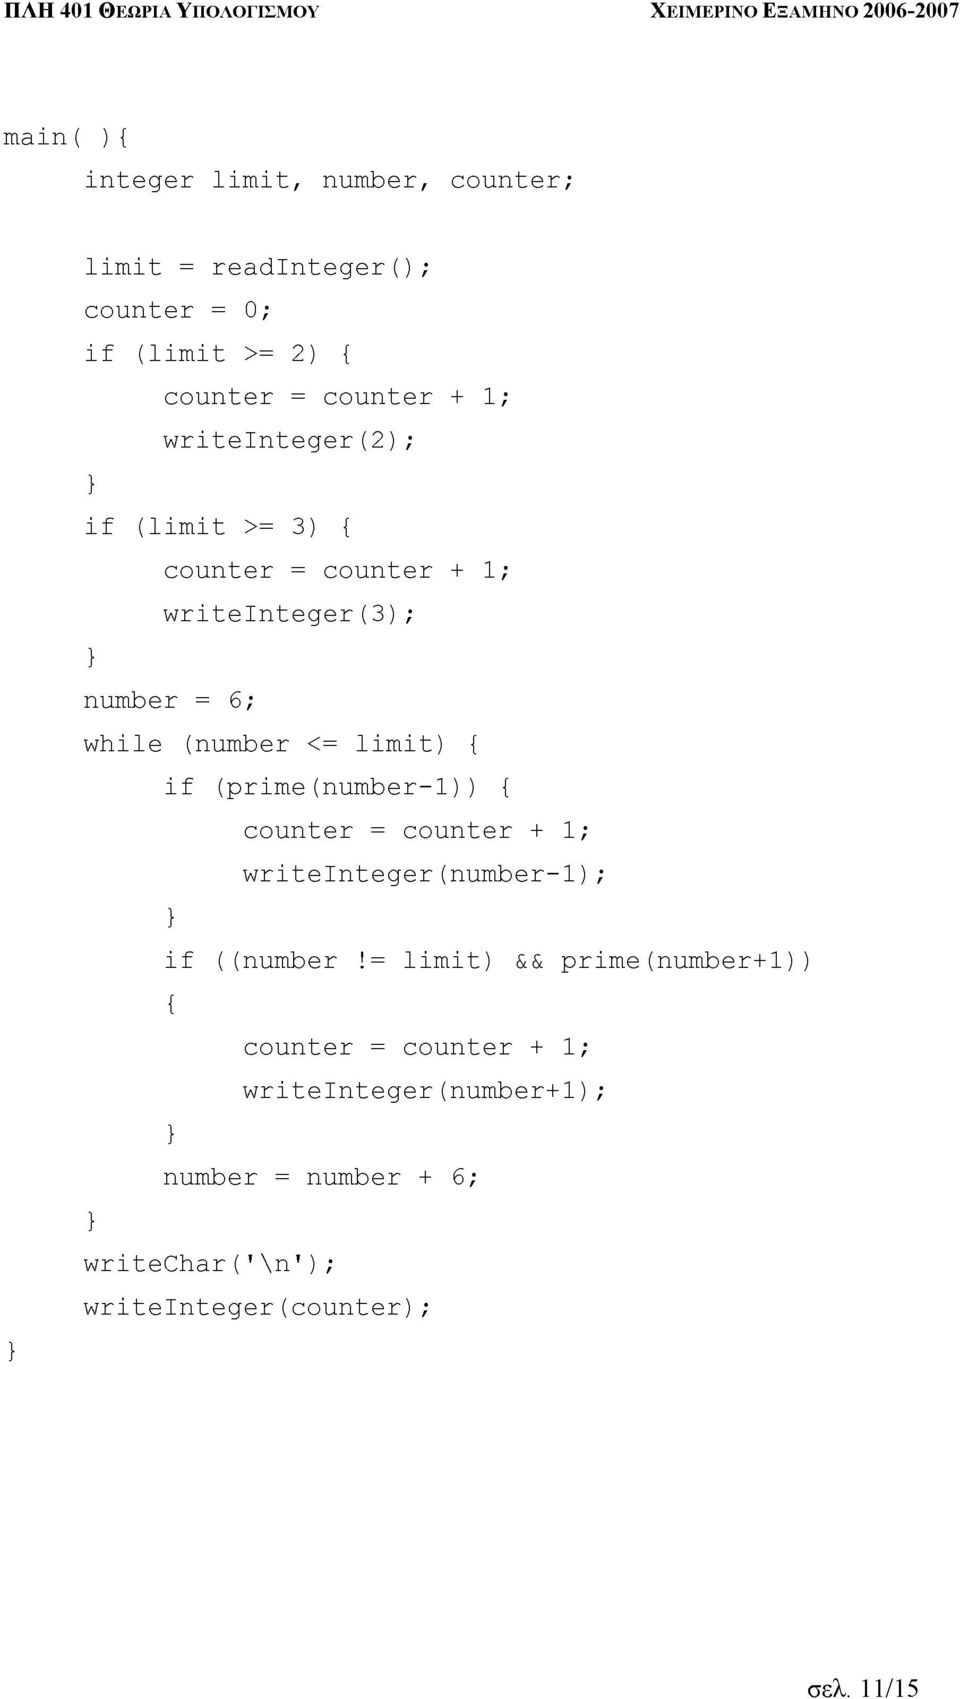 + 1; if = 6; (number <= limit) { if (prime(number-1)) counter counter { { writeinteger(number-1); 1; }((number counter